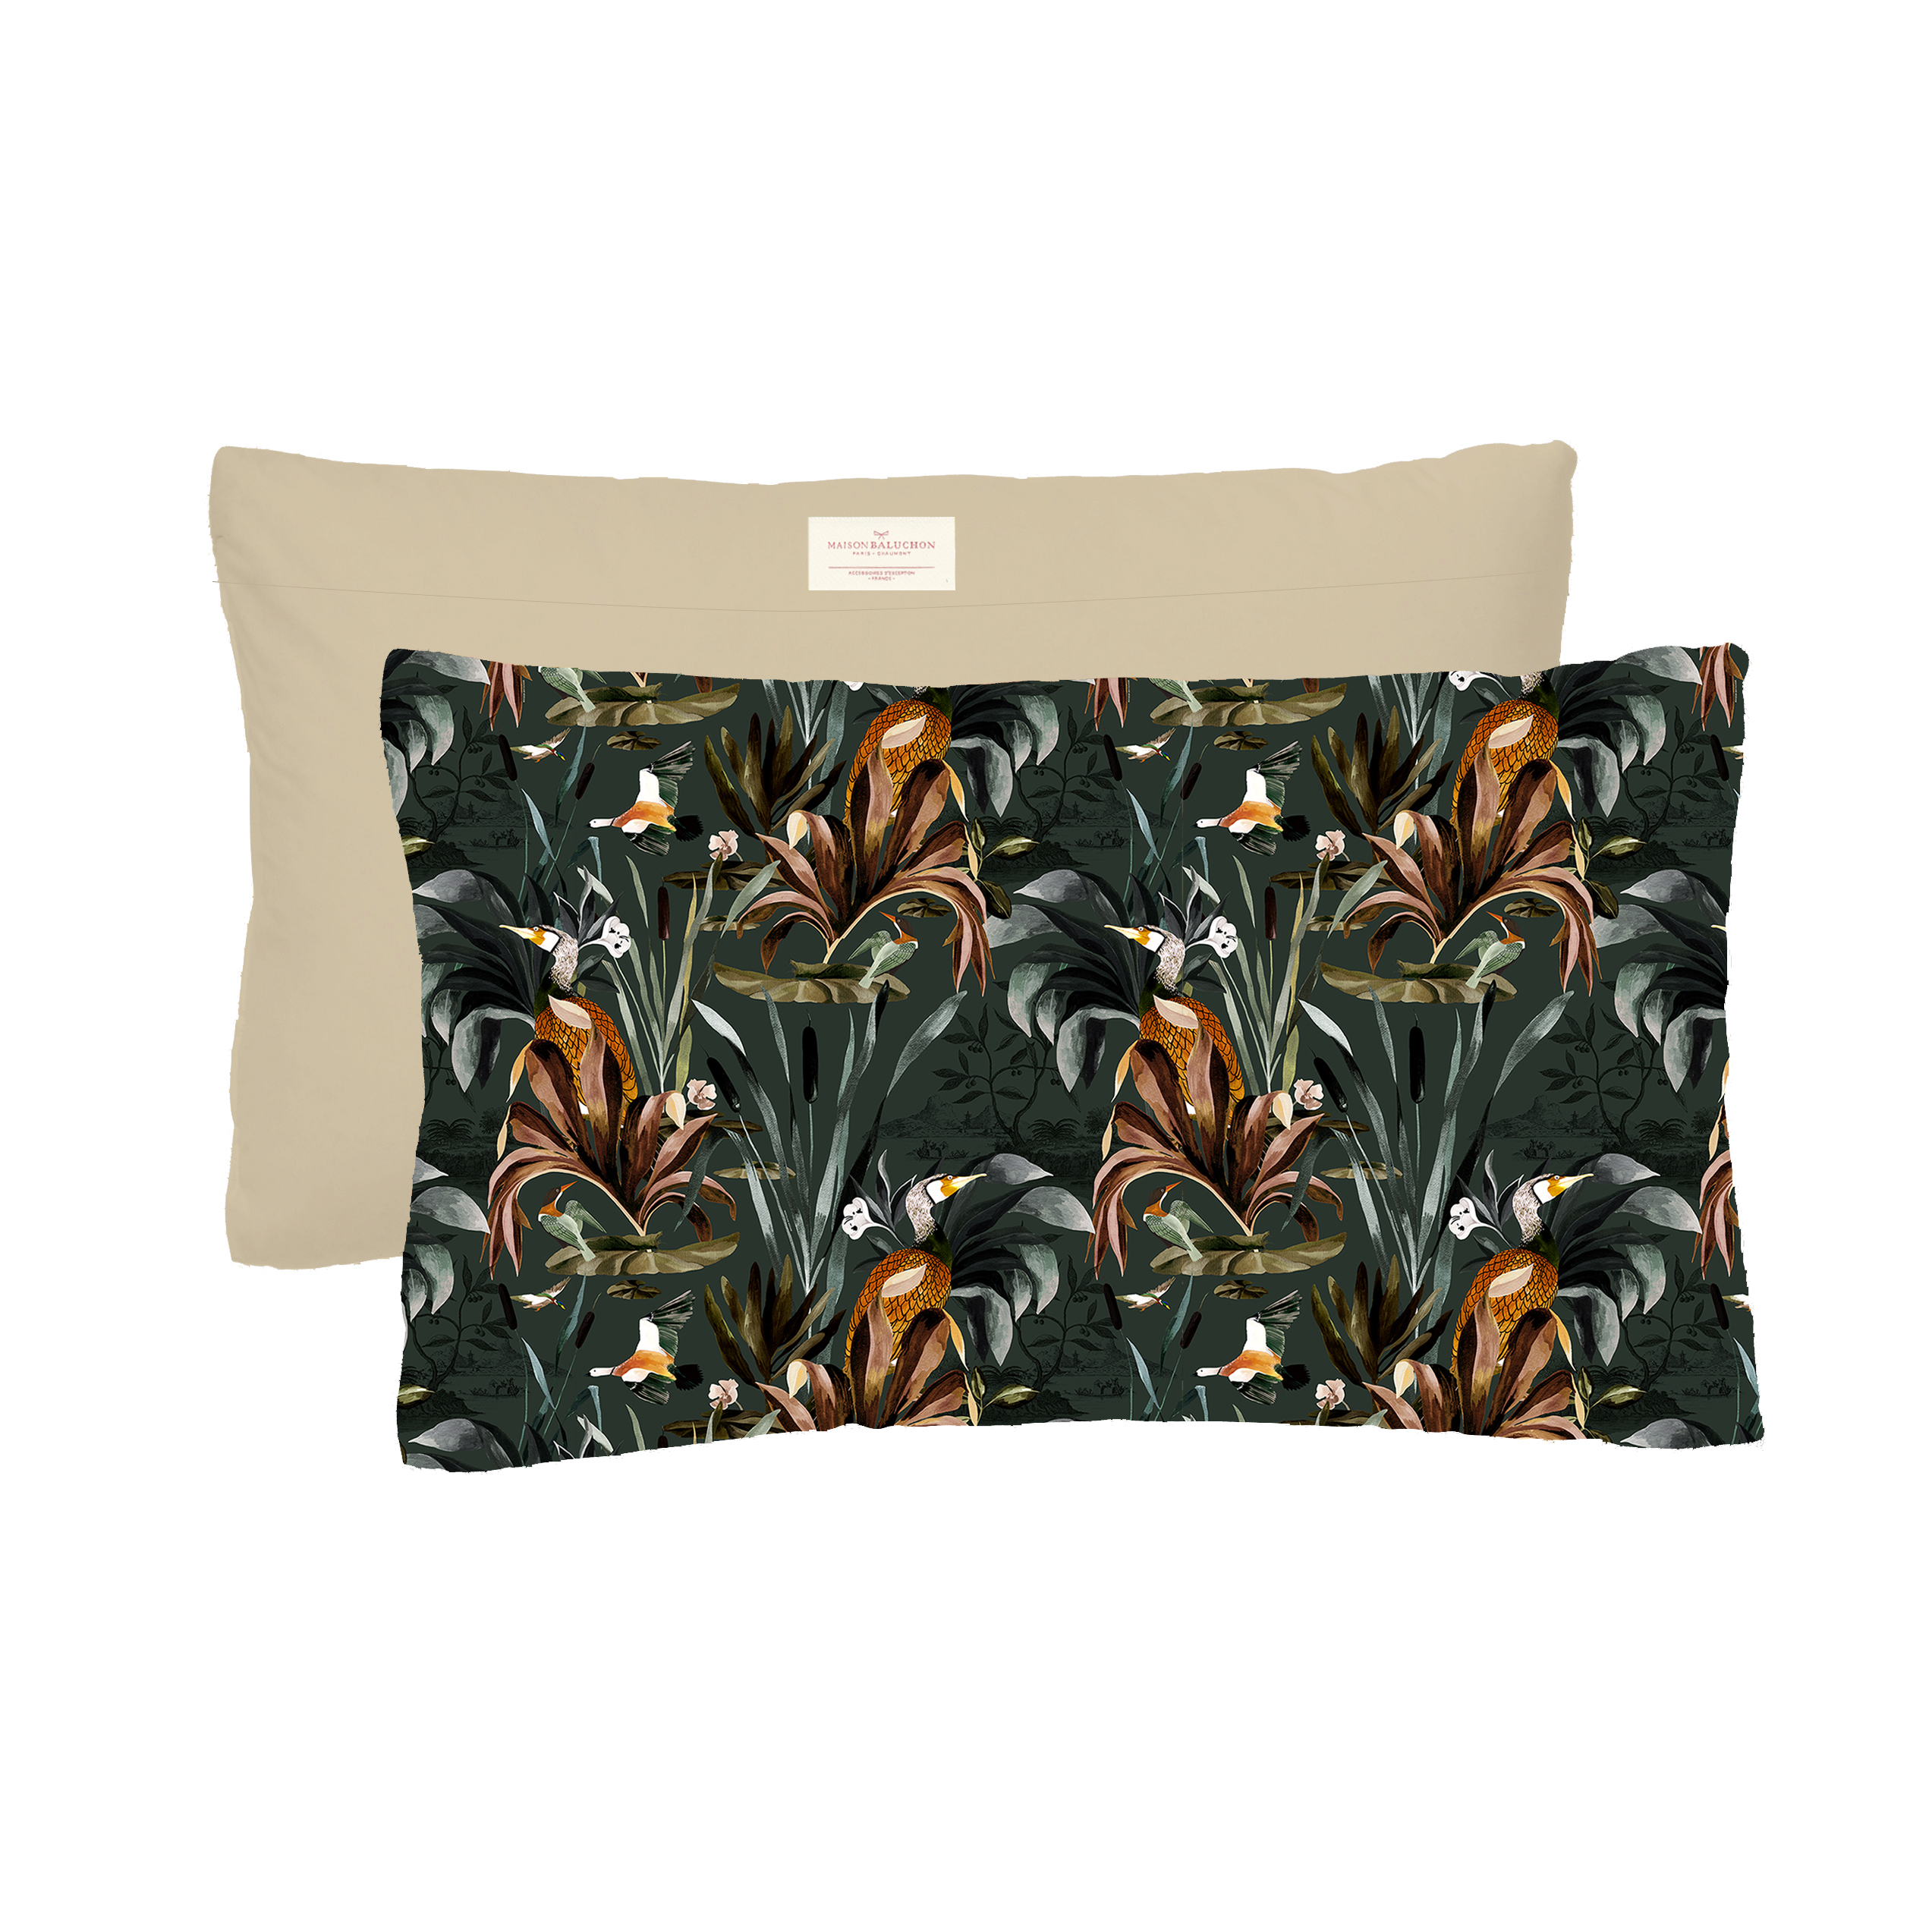 Coussin 50x30 Sauvage N°26 - Vert